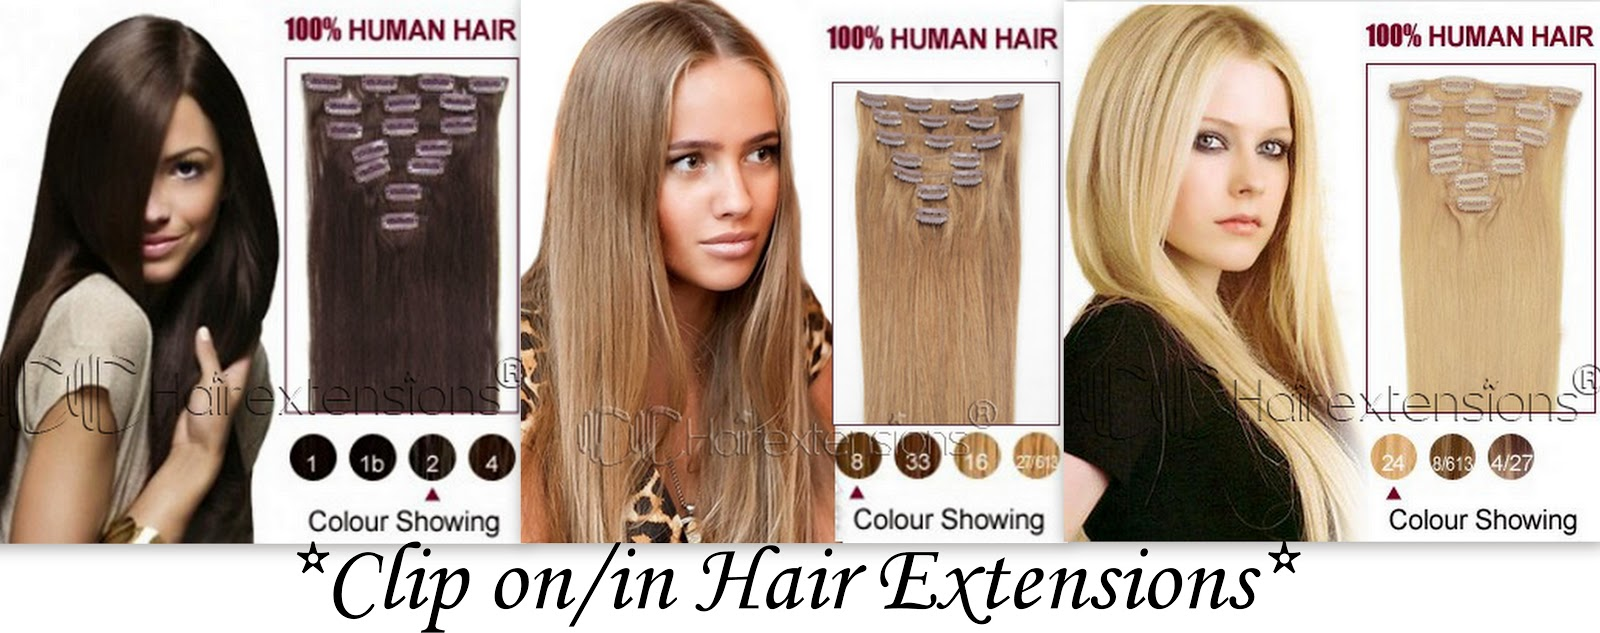 beauty, hair extensions, clip on/in hair extension, hair weave weft, cheap human hair extensions, tape hair extensions